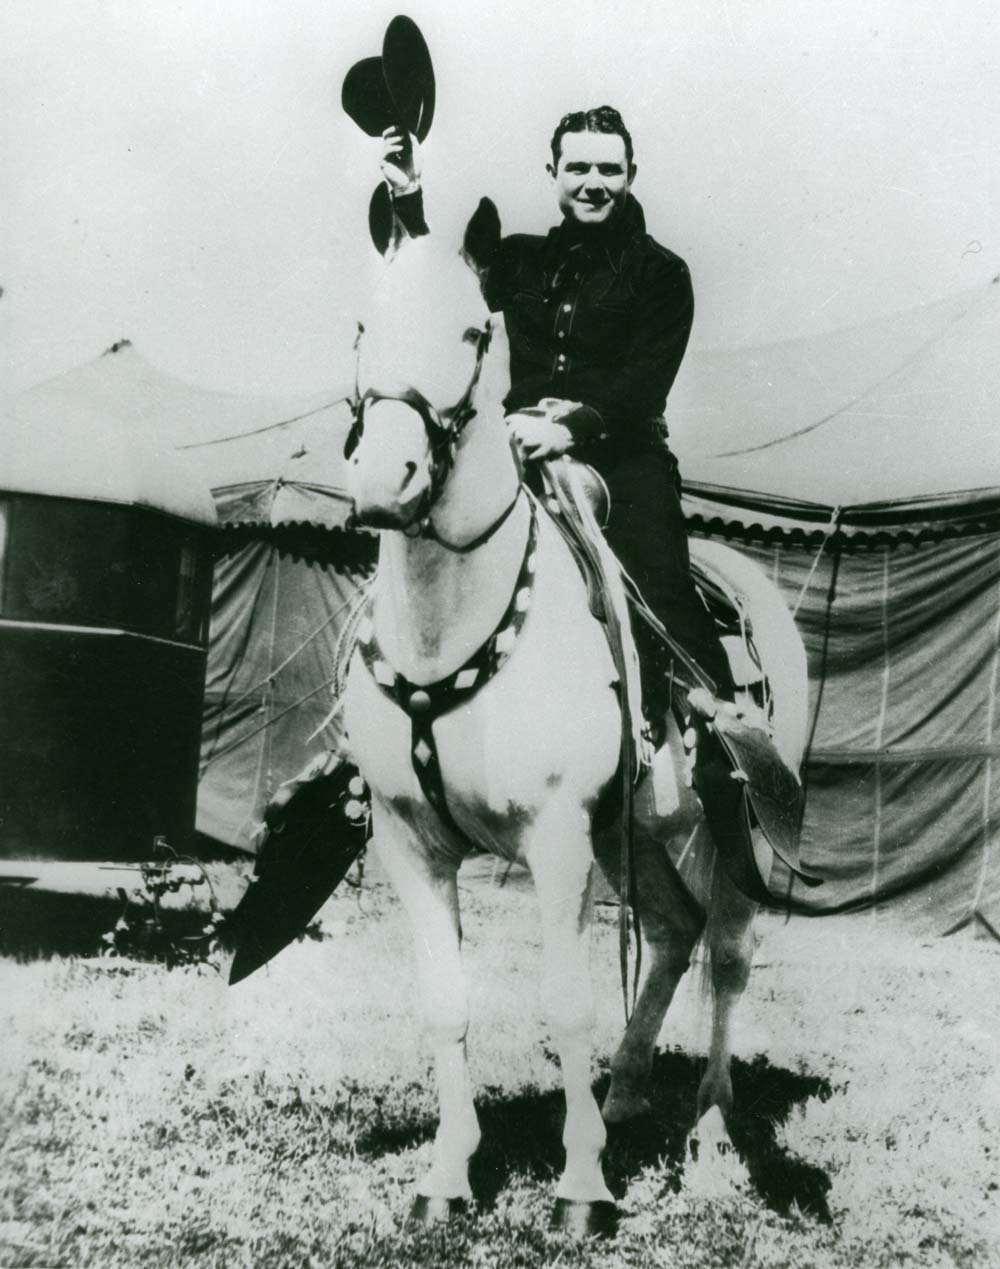 Reb Russell and his horse Rebel